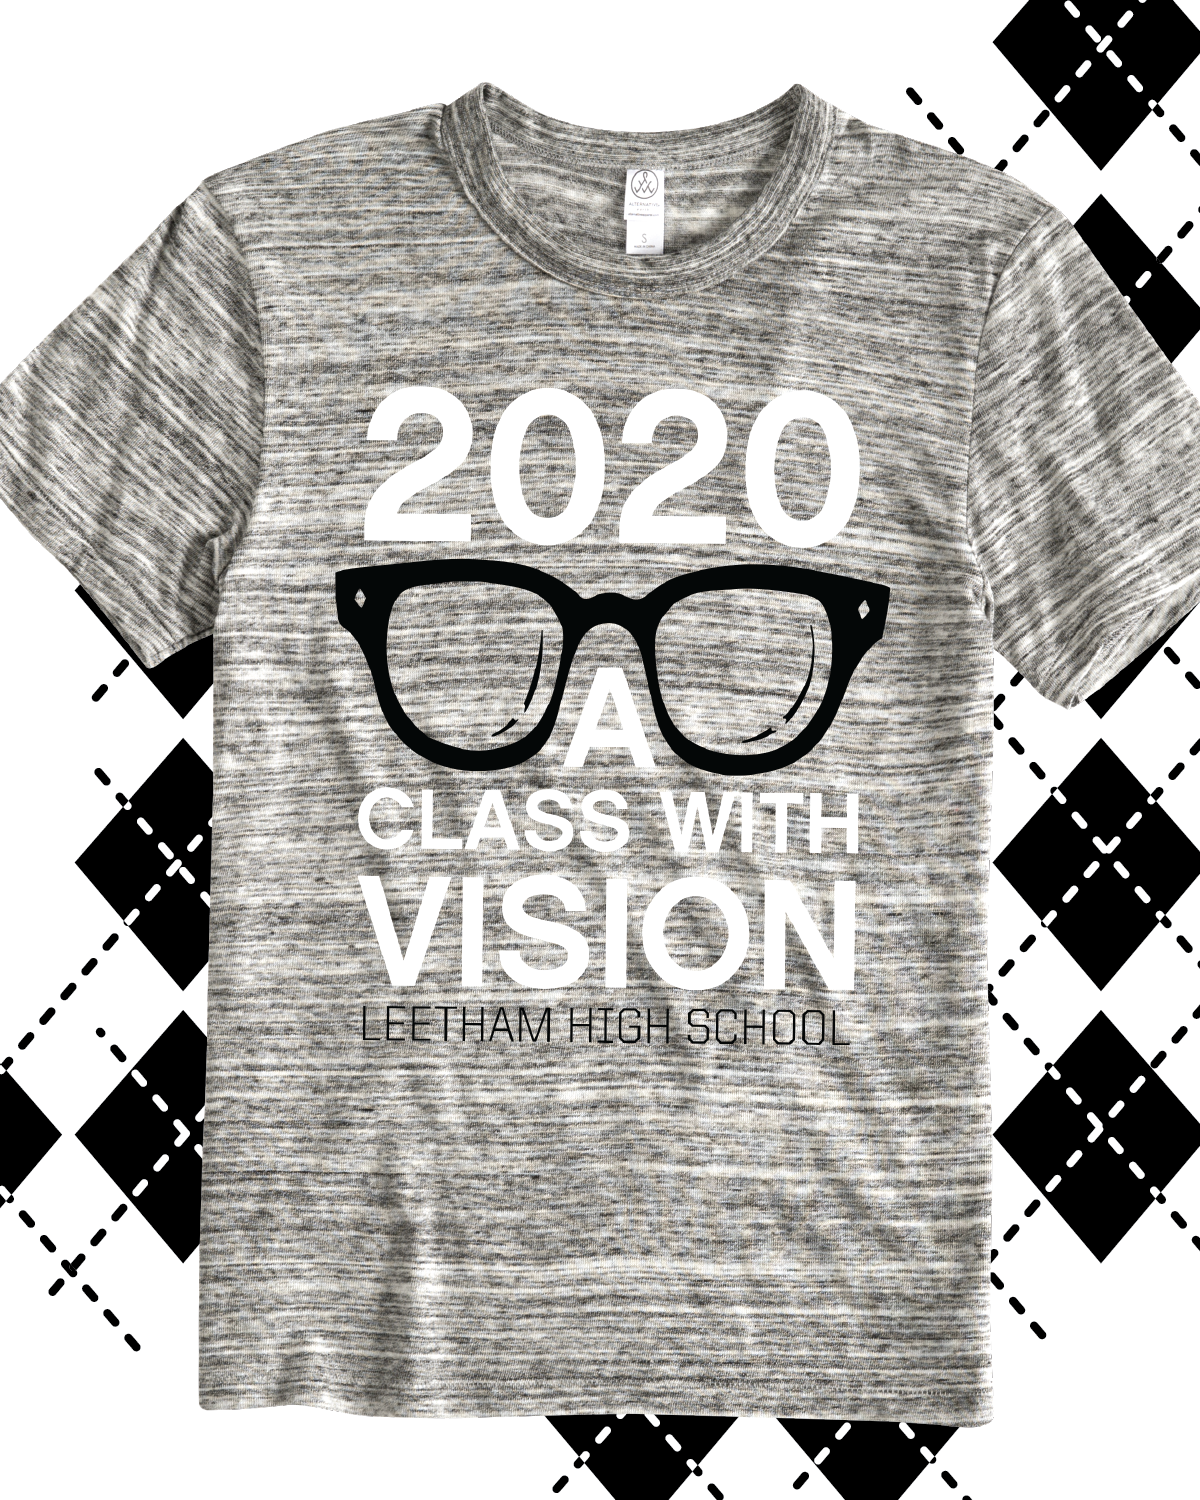 2020 A Class With Vision Class Of 2020 T Shirt Design Idea For